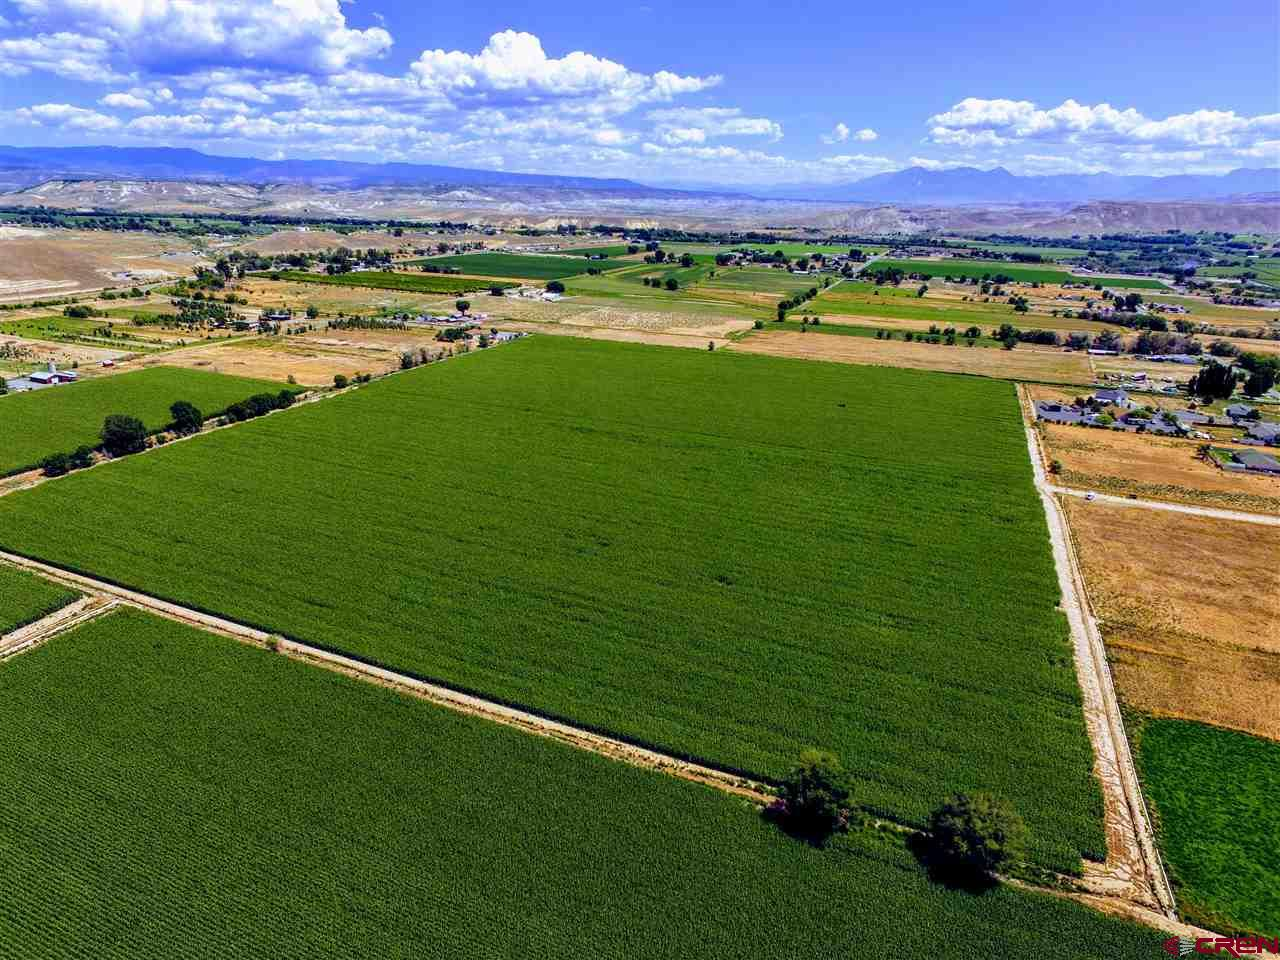 51+ ACRES OF PRIME IRRIGATED FARM GROUND! Tons of potential here for growing a number of different types of crops, including HEMP,HOPS, ORCHARD OR VINEYARD (currently in corn). Also has the excellent possibility of future Subdivision Development in an area that already has some very attractive Country Subdivisions & Homes. Gorgeous Views of the San Juans & the West Elks. Includes 900' of Gated Pipe, 50 Shares of Butte Ditch w/allocated OCID Irrigation and an Installed Orchard City Domestic Water Tap. Come build your Dream Home, Farm, Orchard, Ranch or whatever you want. Property is fenced on West & North Side & partial on South Side. There is an irrigation ditch that borders the East Side w/fencing along the other side of the ditch. Owner currently has an agreement with a tenant that irrigates & farms the land, so any growing crops at the time of sale would belong to the tenant. (Note: Any Subdivision Development of the land would be dependent on the availability of additional Orchard City Domestic Water Taps. Taps are currently available, however, Buyers should verify for themselves.)